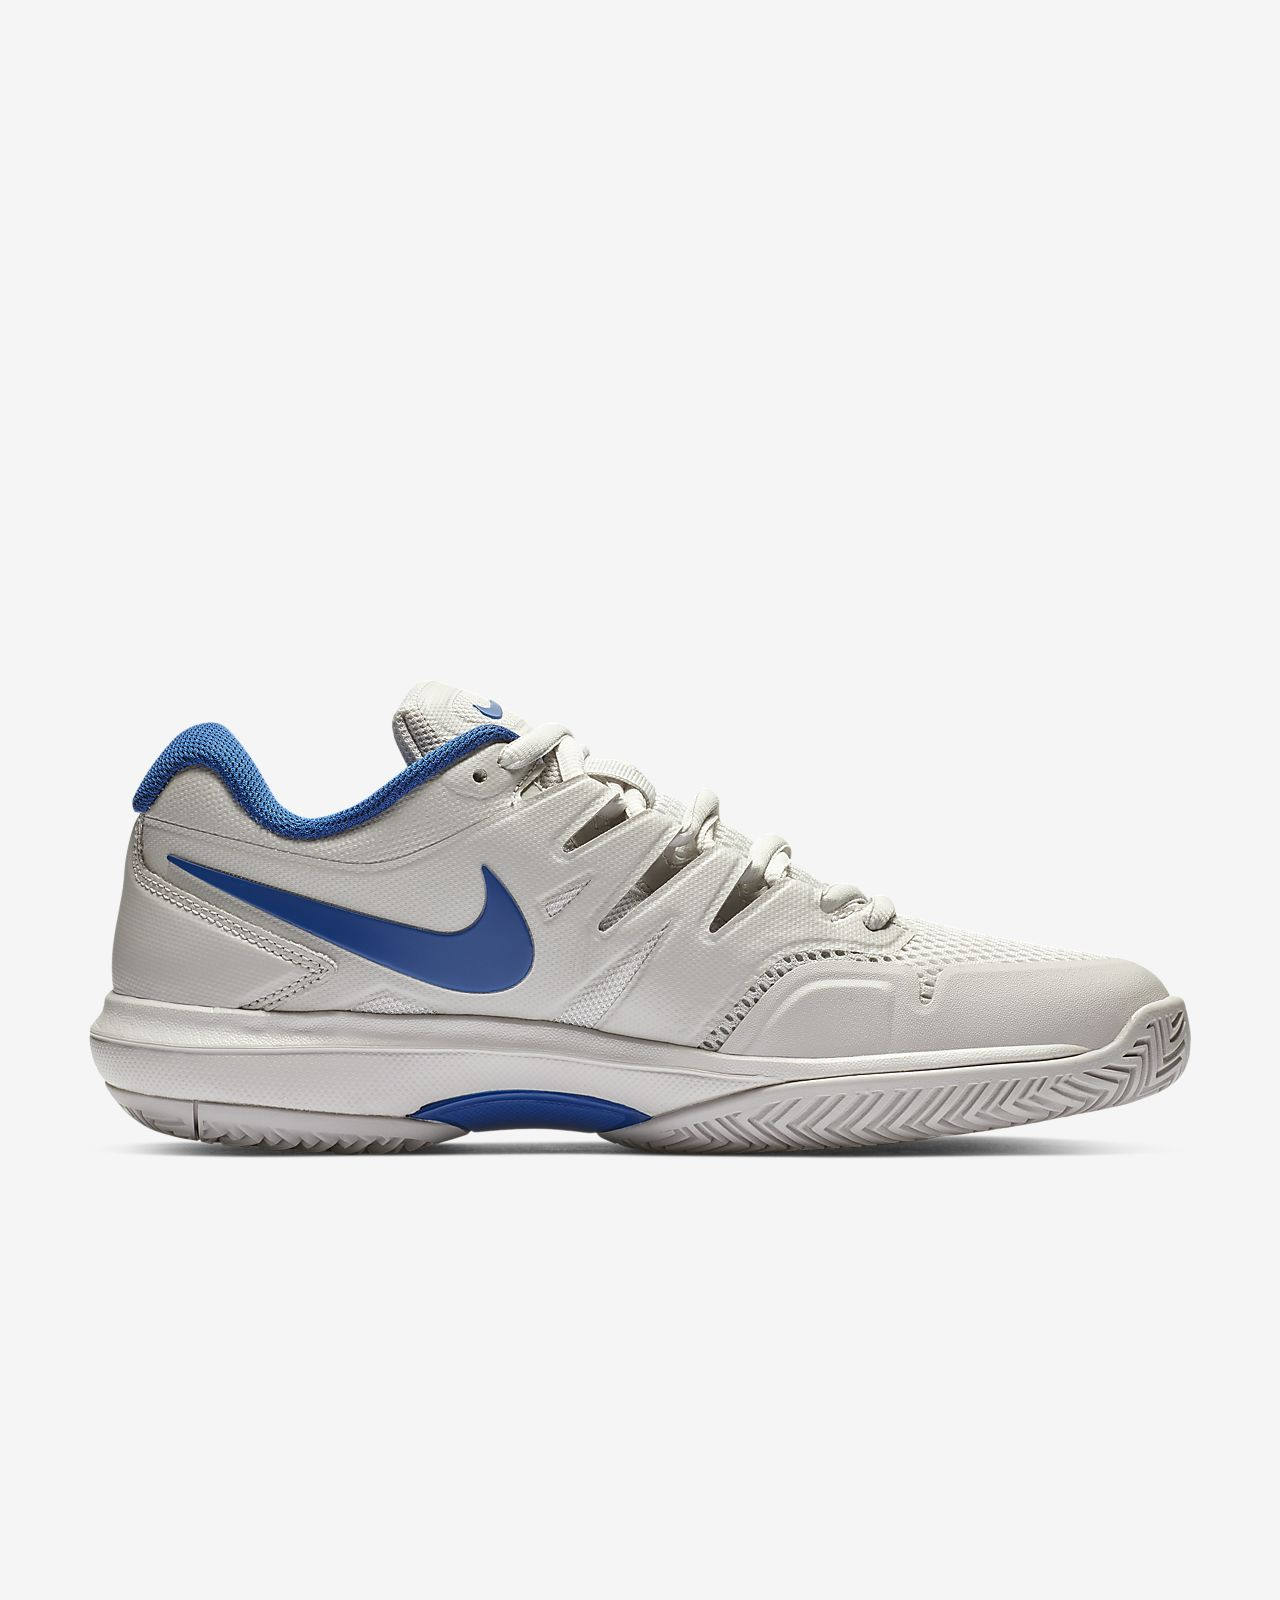 449fb1066241f NikeCourt Air Zoom Prestige Men s Hard Court Tennis Shoe. Nike.com